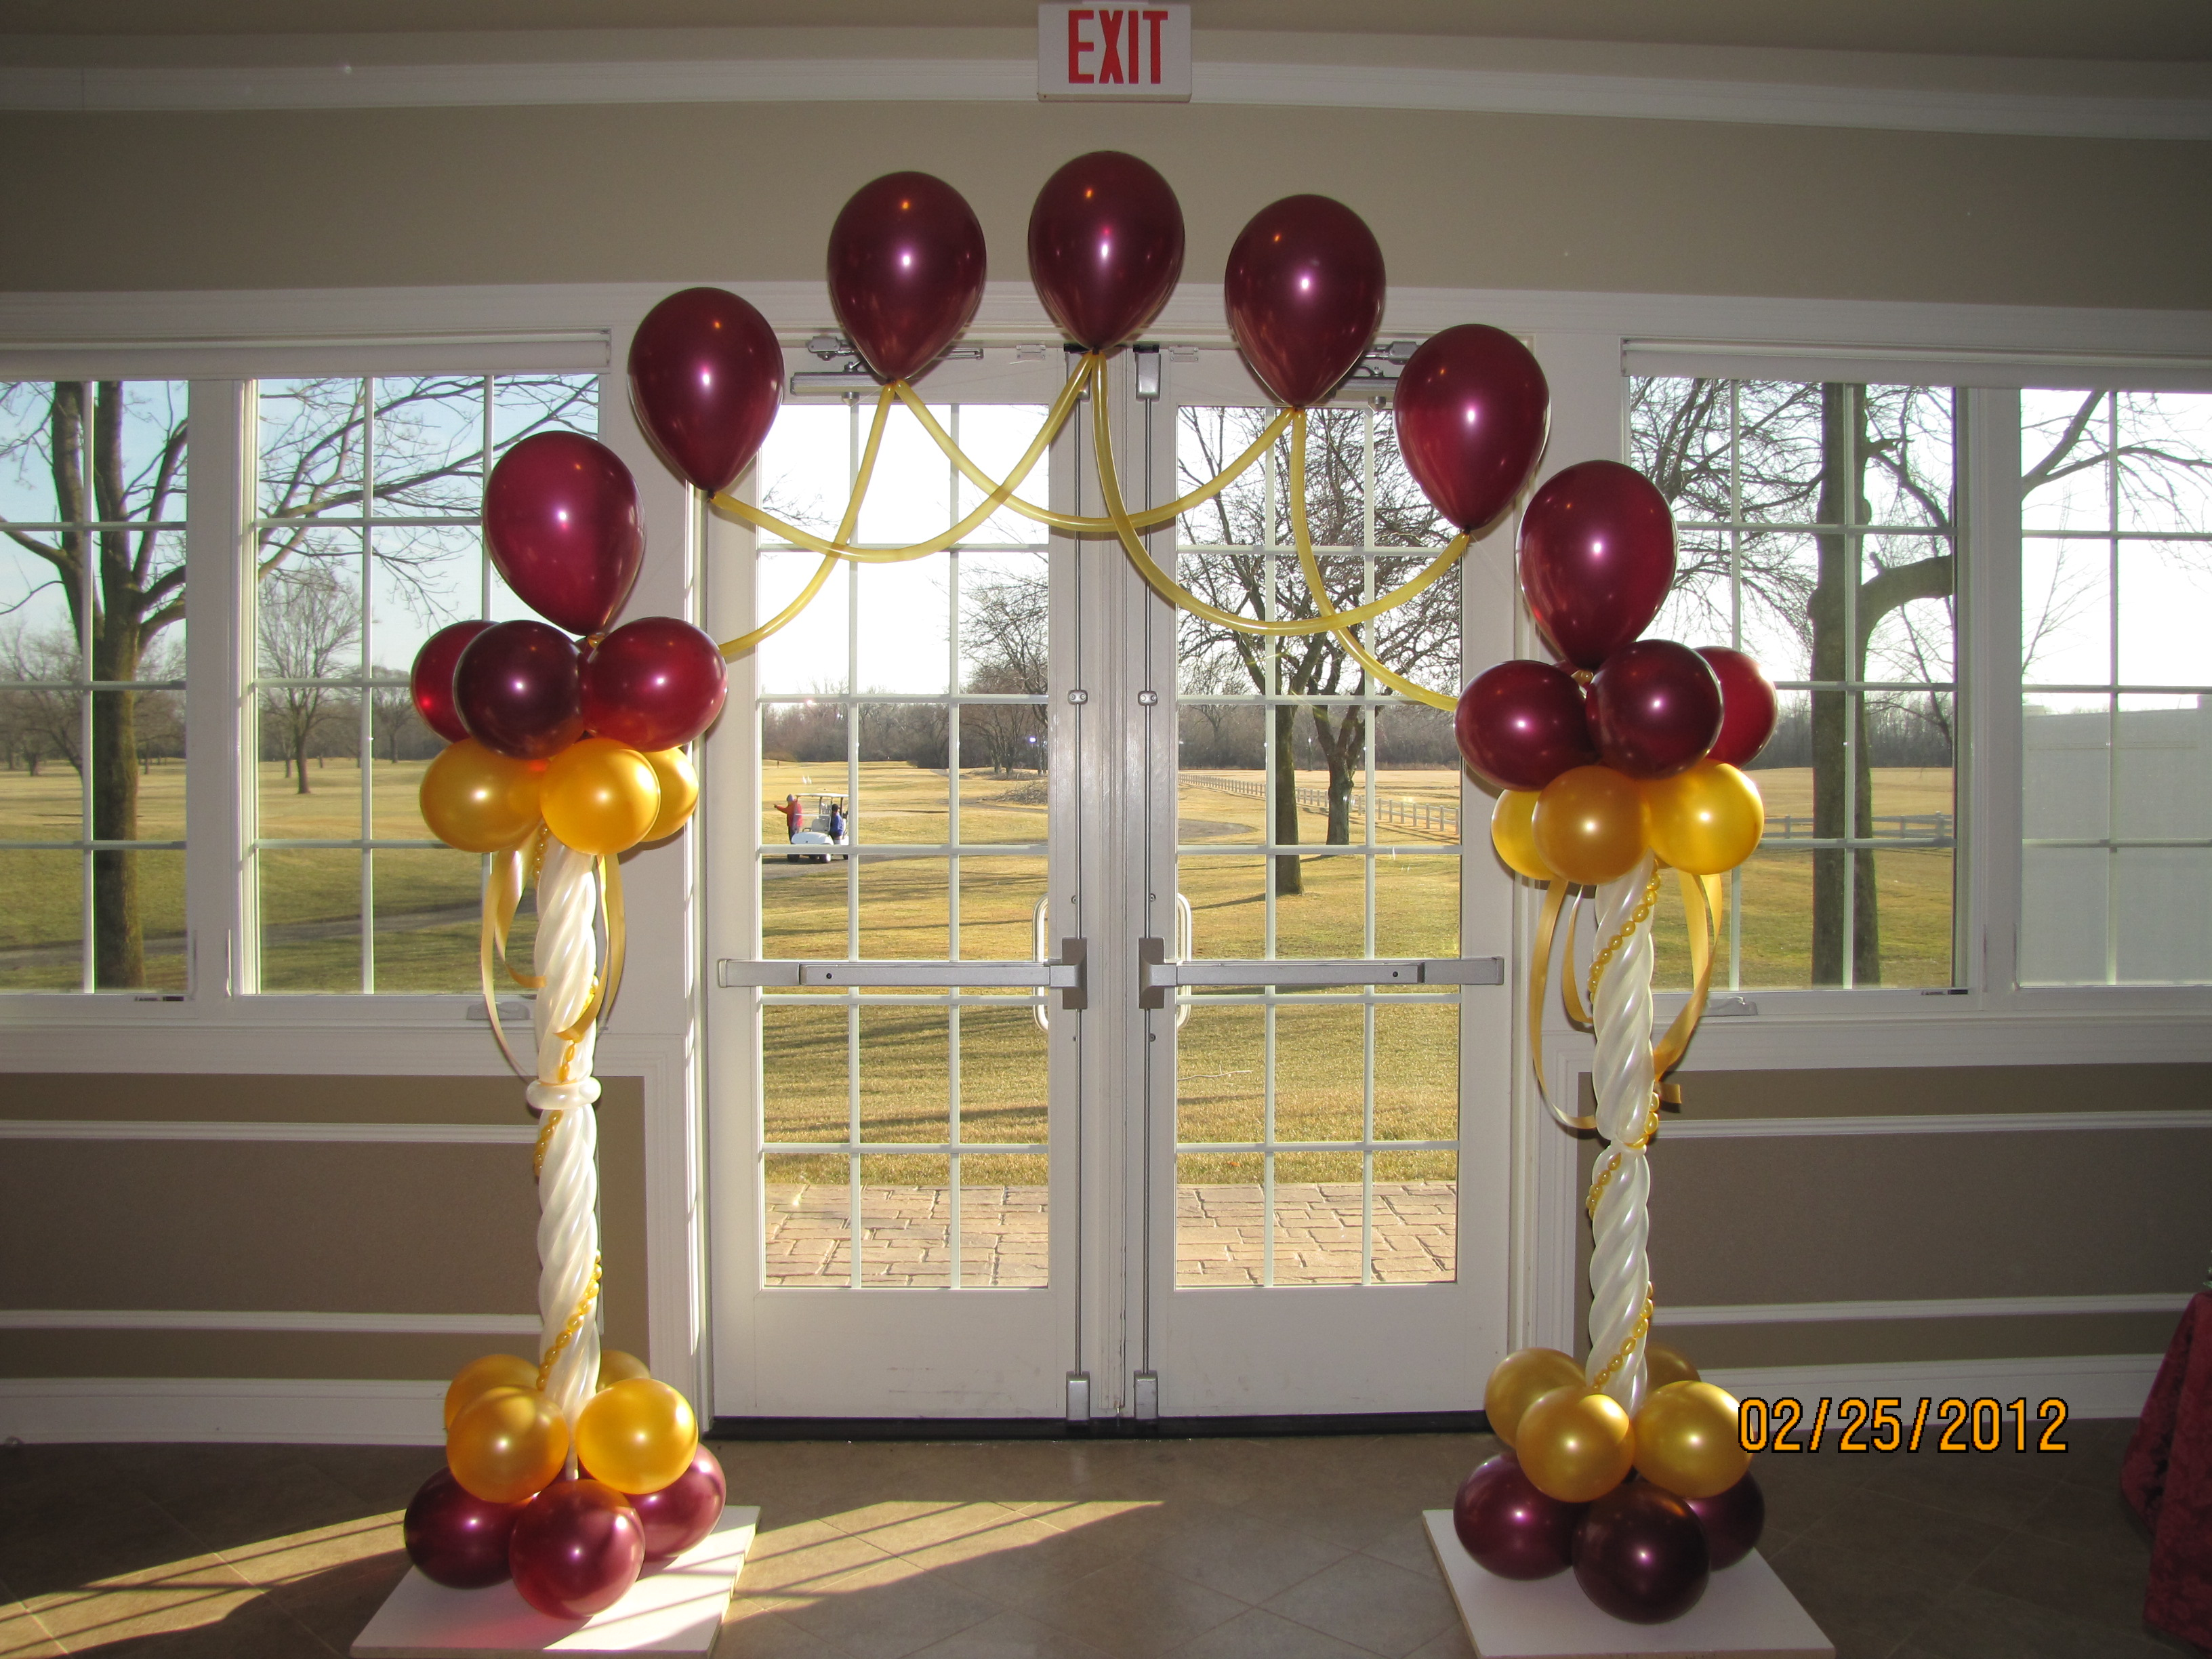 Northwest indiana balloons amytheballoonlady for Balloon decoration accessories